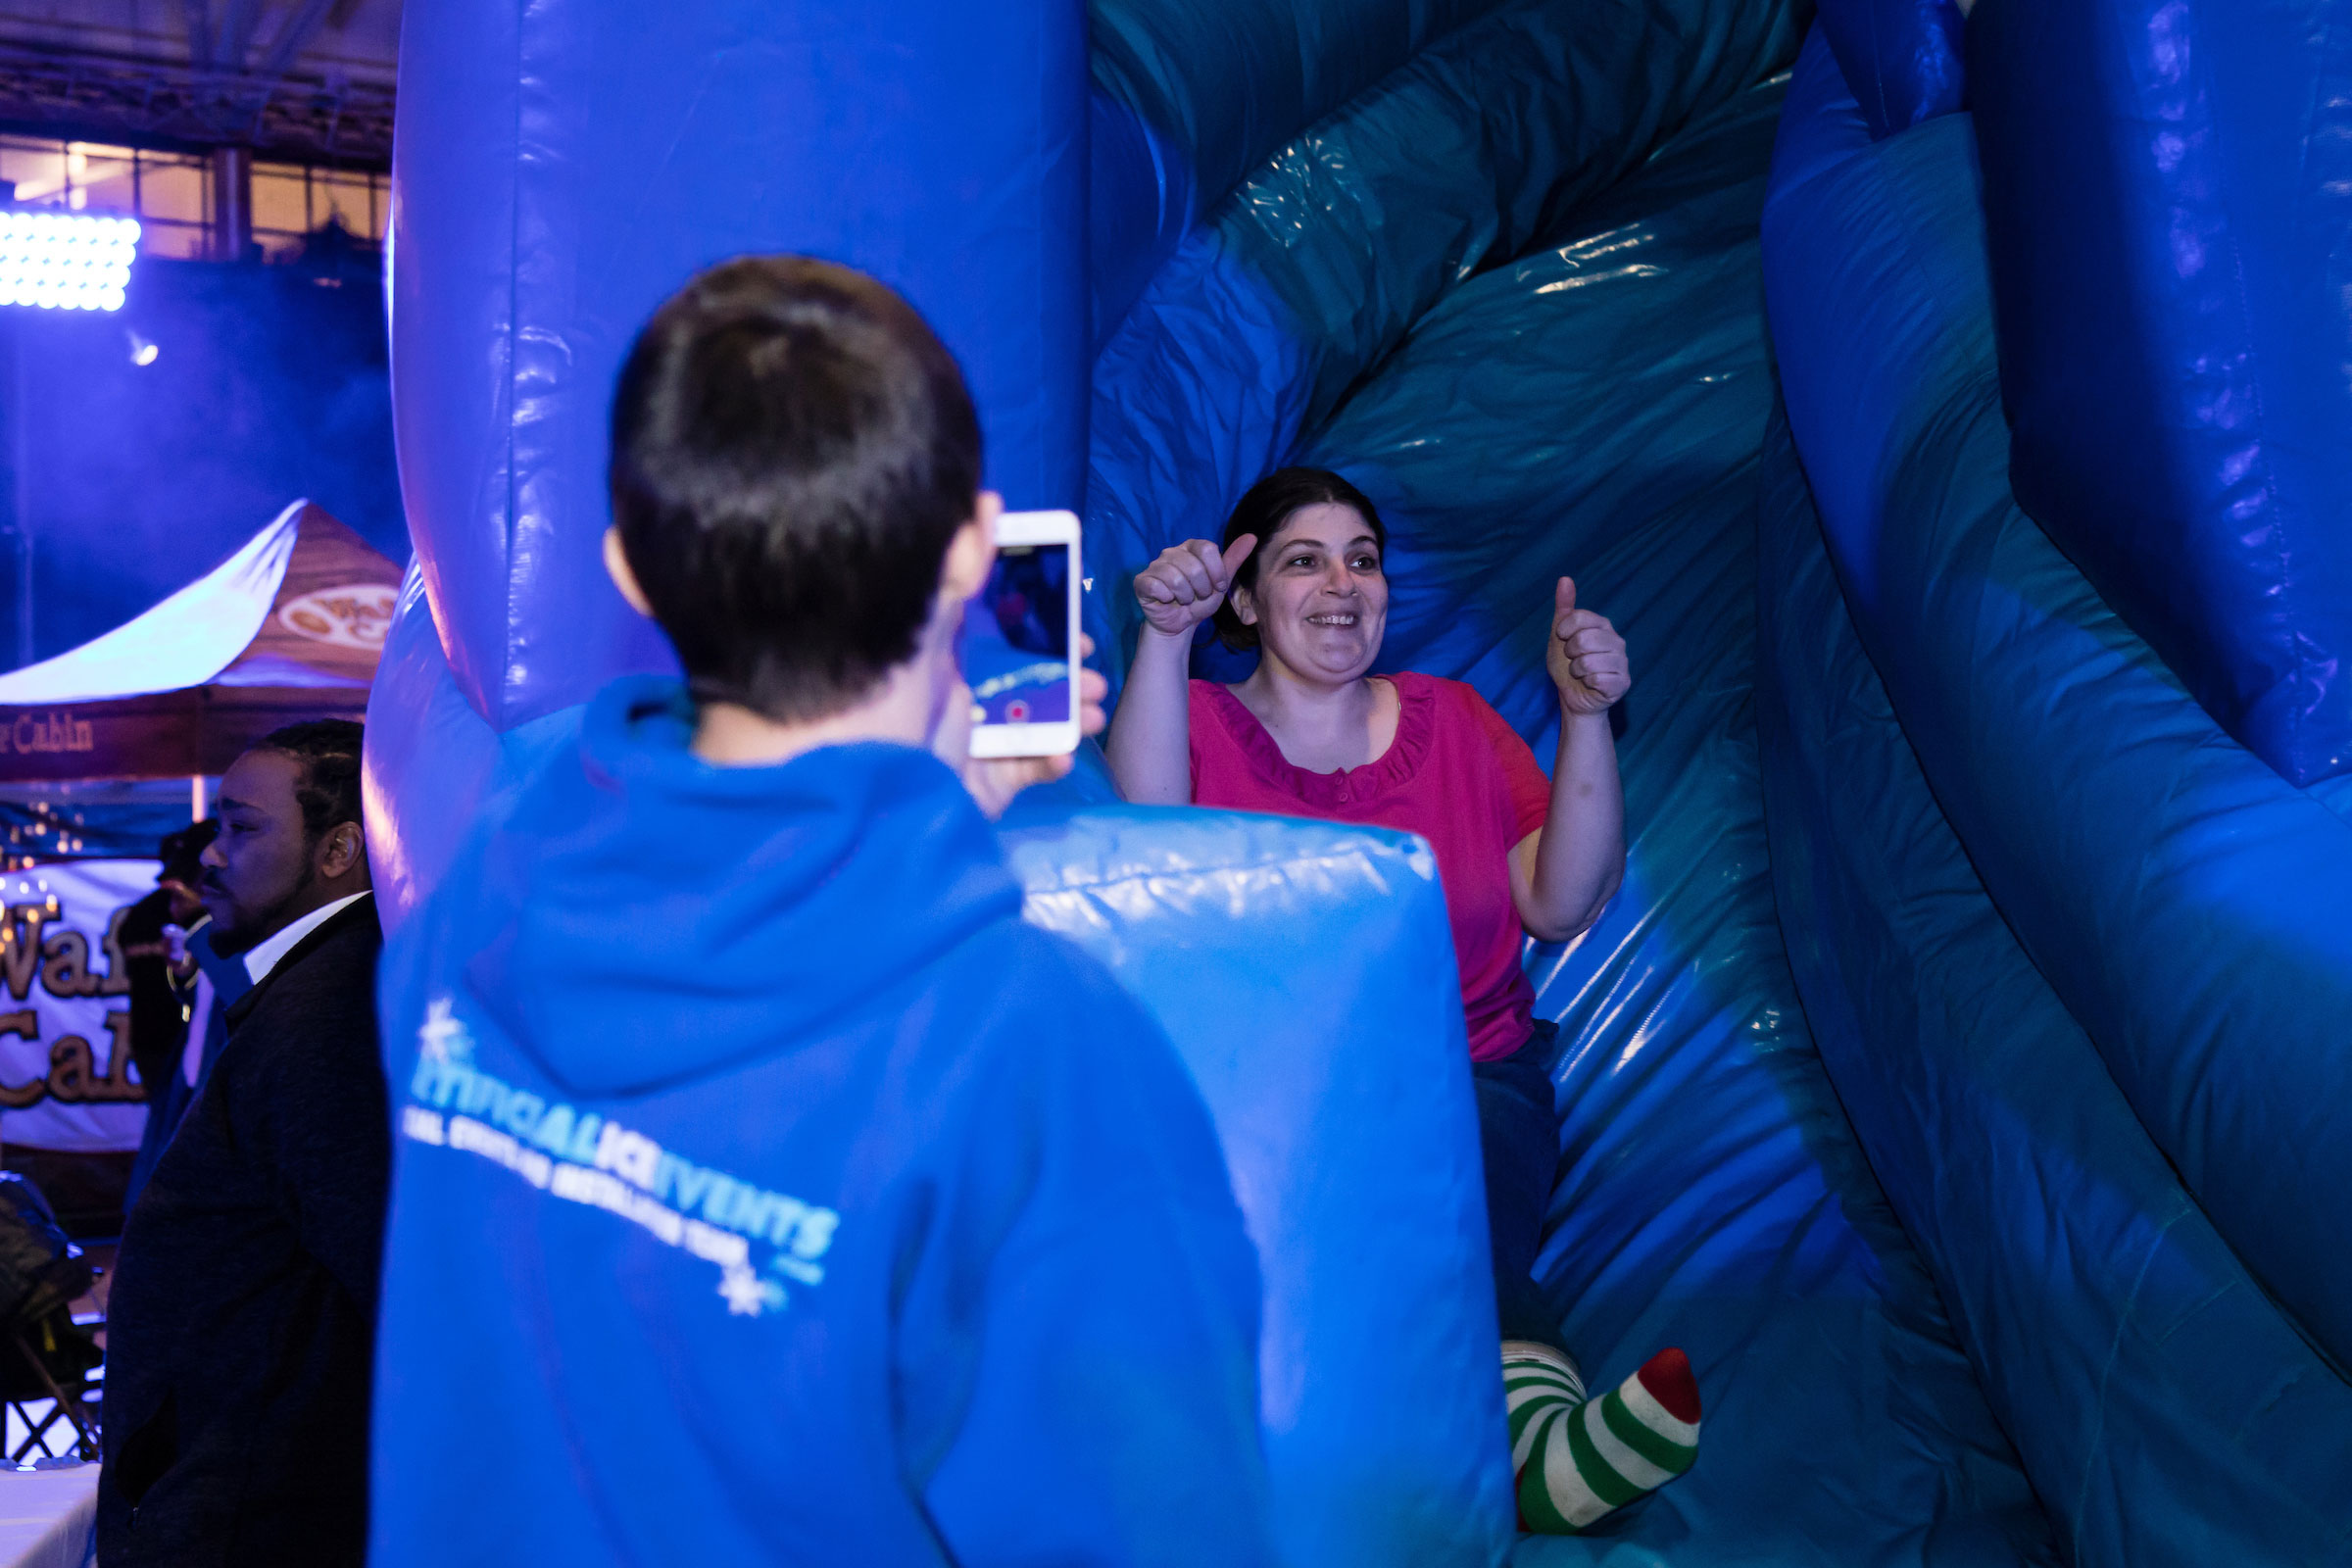 A woman rides the inflatable slide